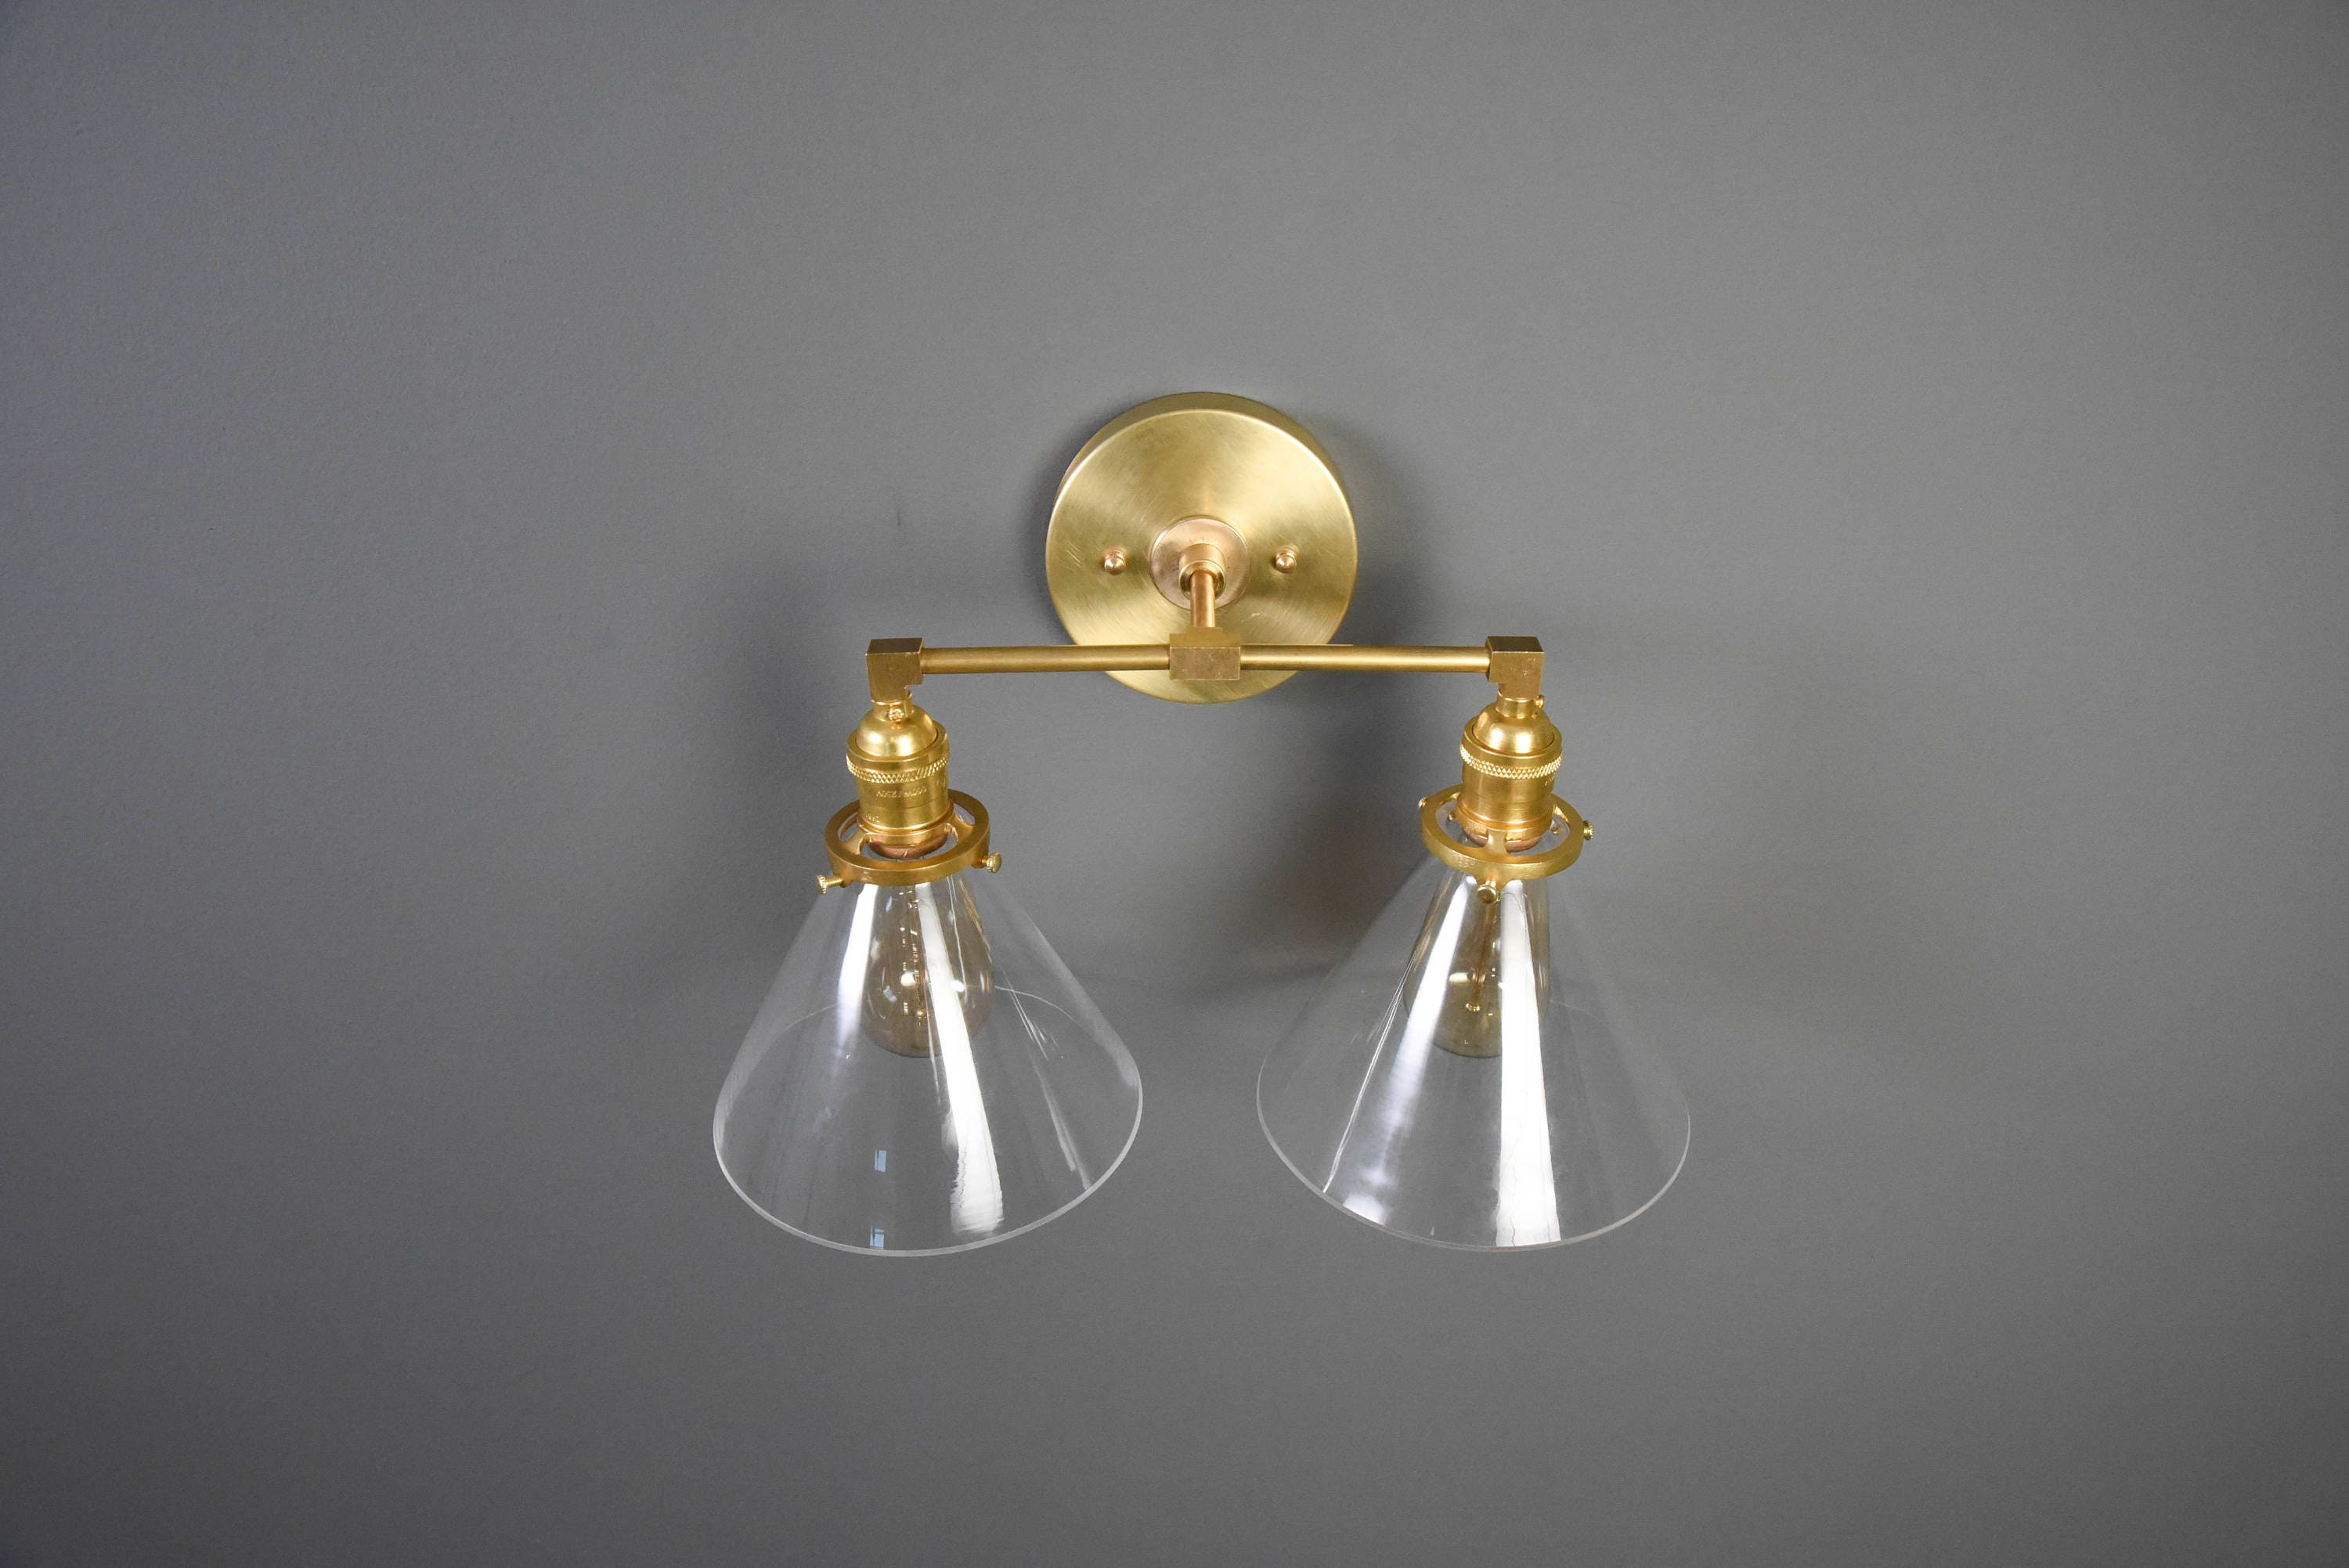 Modern Ridged Shade Bath Sconce 2 Light: Wall Sconce Vanity Gold Brass 2 Bulb With Clear Cone